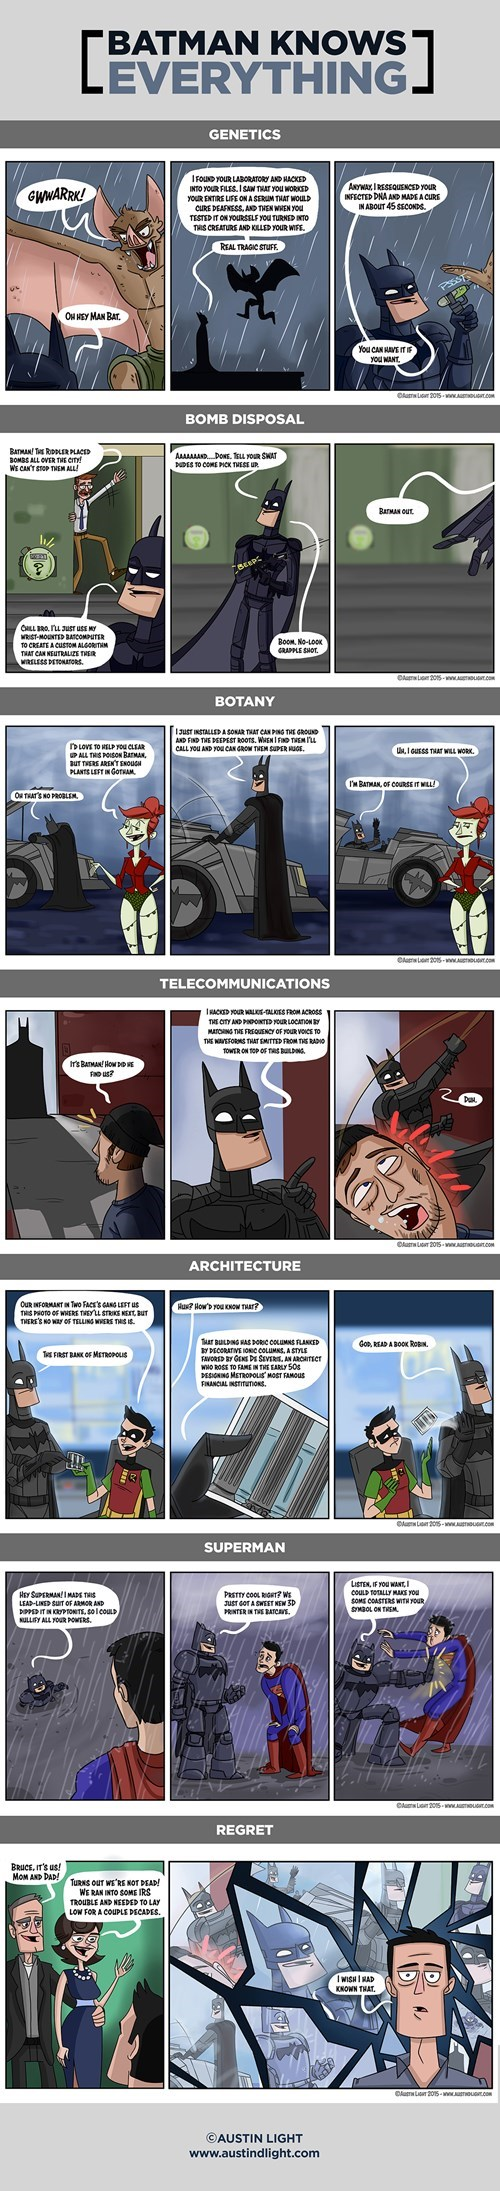 superheroes-batman-knows-everything-web-comic-dc